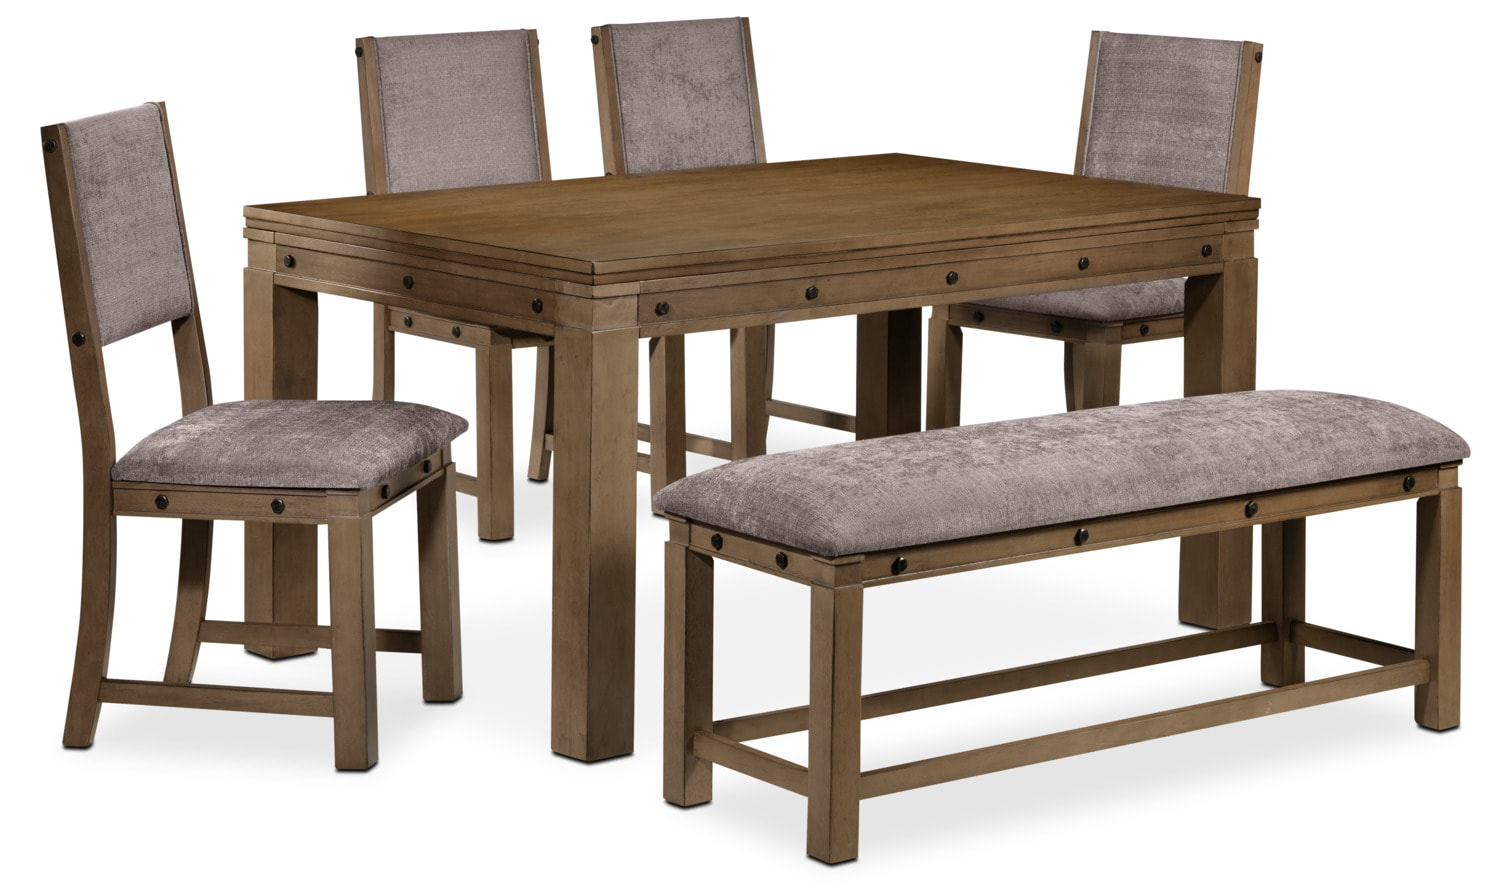 Bryce 6-Piece Dinette Set - Rustic Oak and Walnut